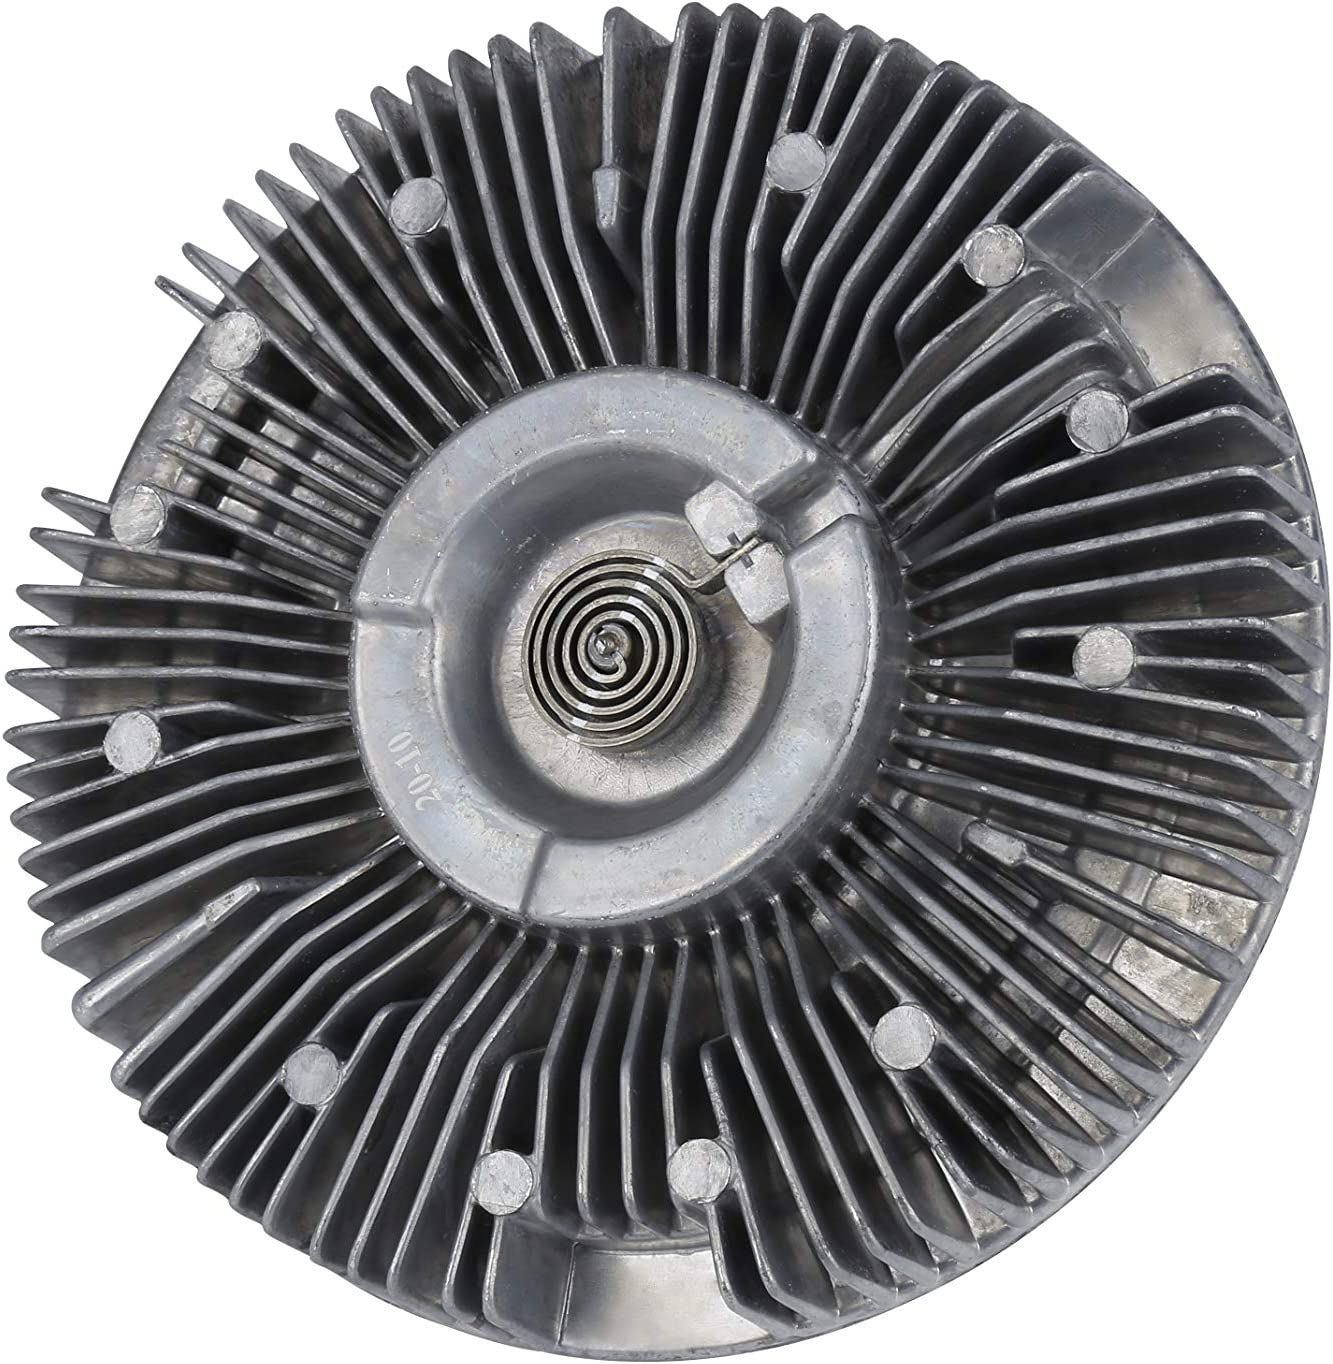 Replacement Electronic Radiator Fan Clutch Avalanche Suburban 1500 GMC Sierra 2500 HD Compatible with Chevy Silverado 20913877 Yukon XL 1500 Cadillac Vehicles Replaces 15-4694 Tahoe